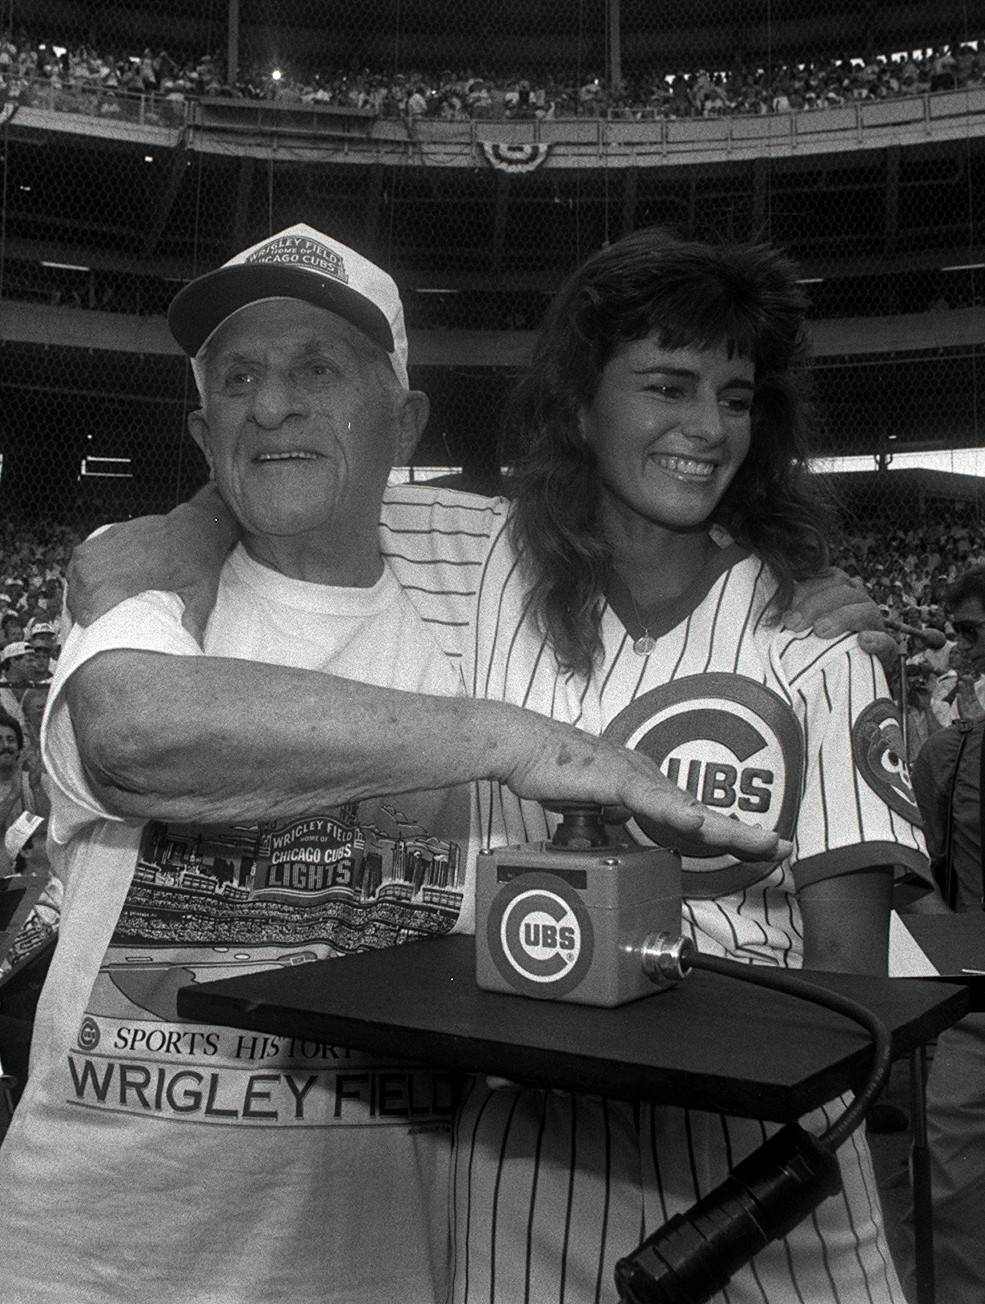 As the oldest season-ticket holder, 91-year-old Cubs fan Harry Grossman, punches the button switching on the lights for the first night game at Wrigley Field in Chicago on Aug. 8, 1988. That game was postponed by rain, but the Cubs have a surprisingly good record in night games at Wrigley since then.